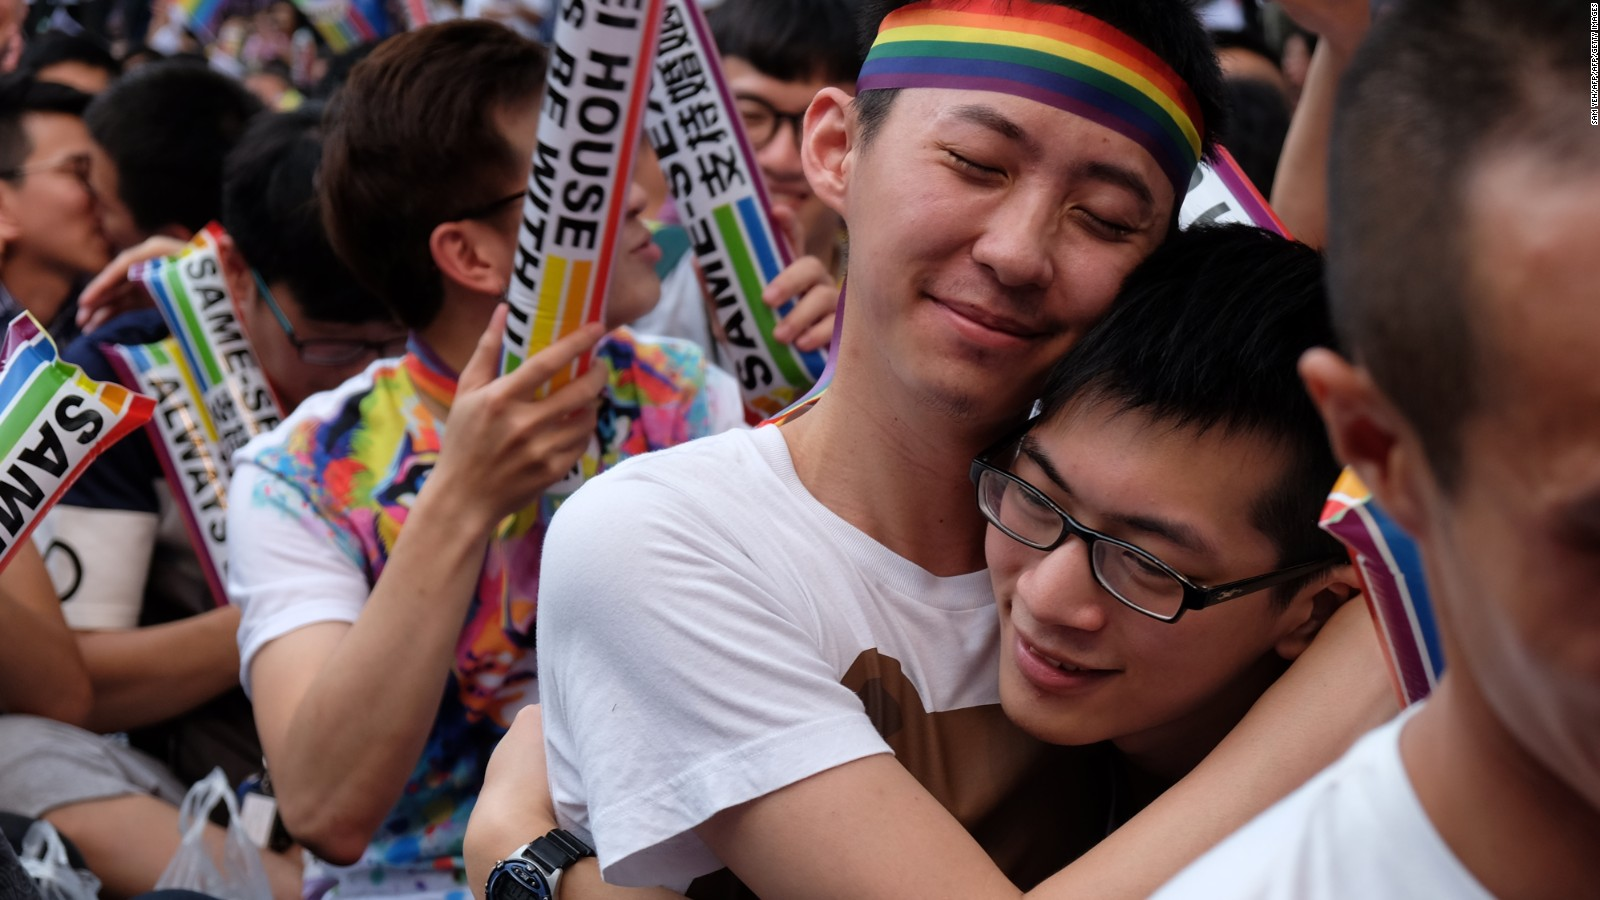 homosexuality in china taiwan